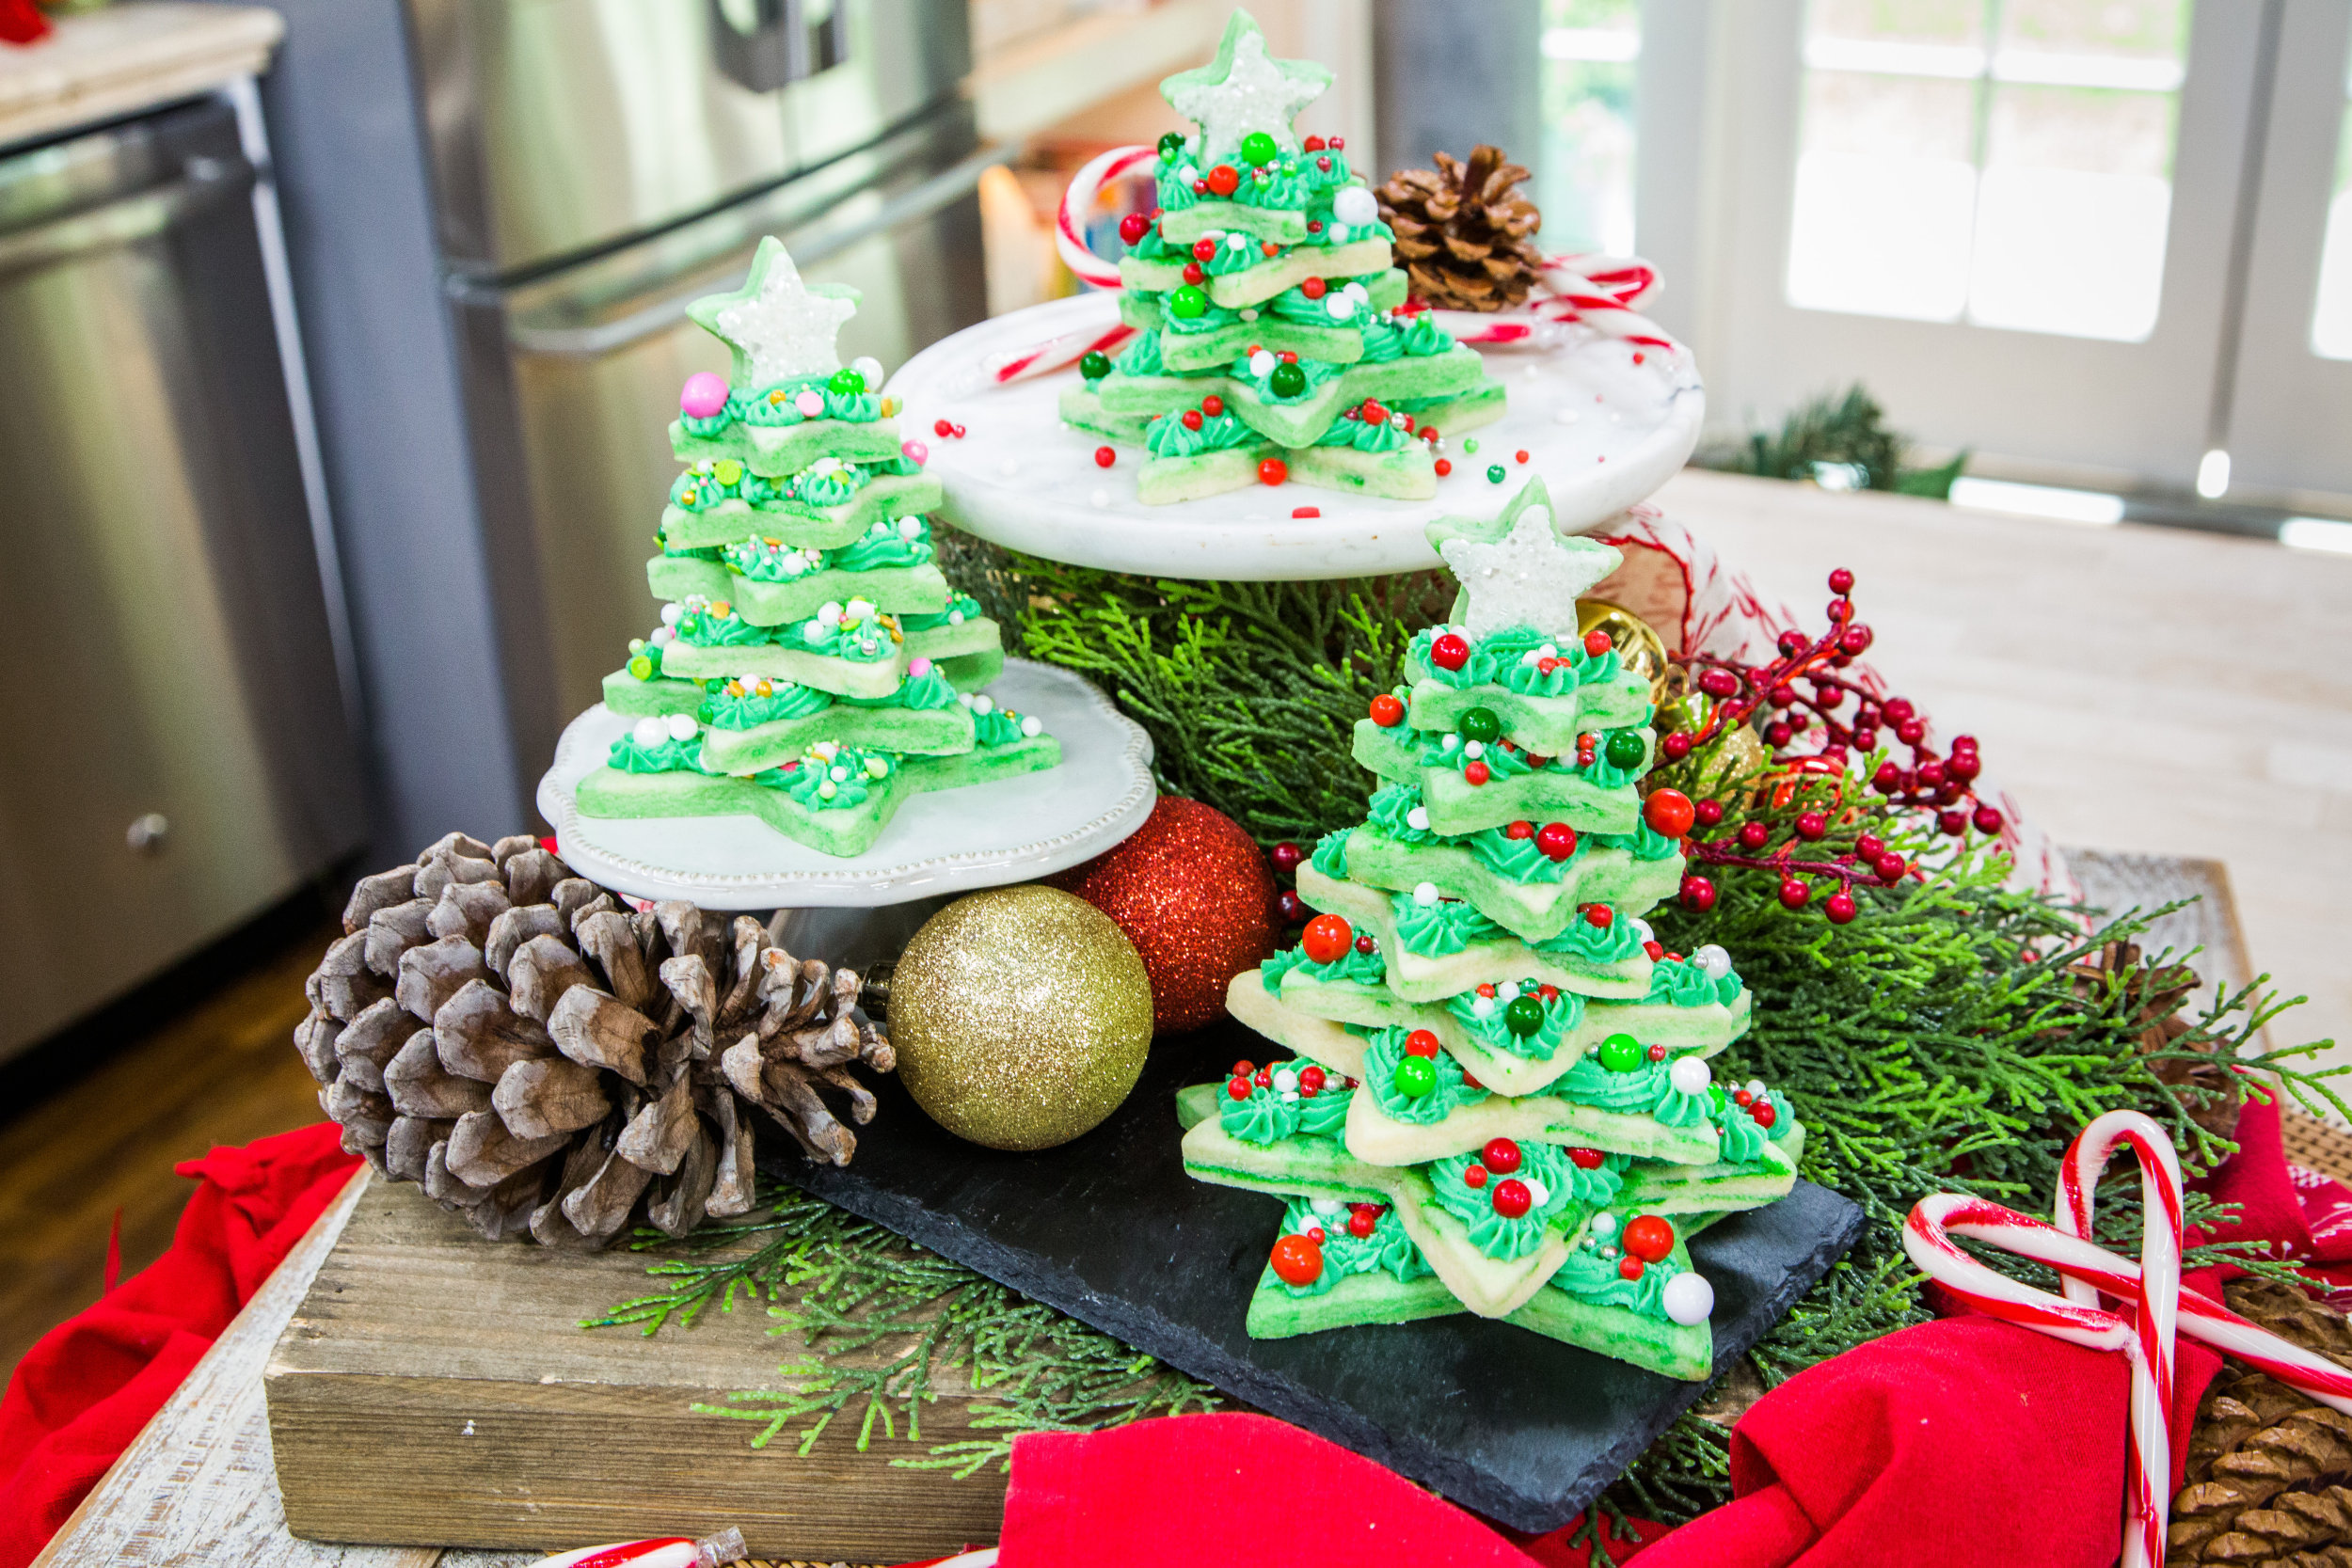 Cookie Christmas Trees - Home & Family | Hallmark Channel